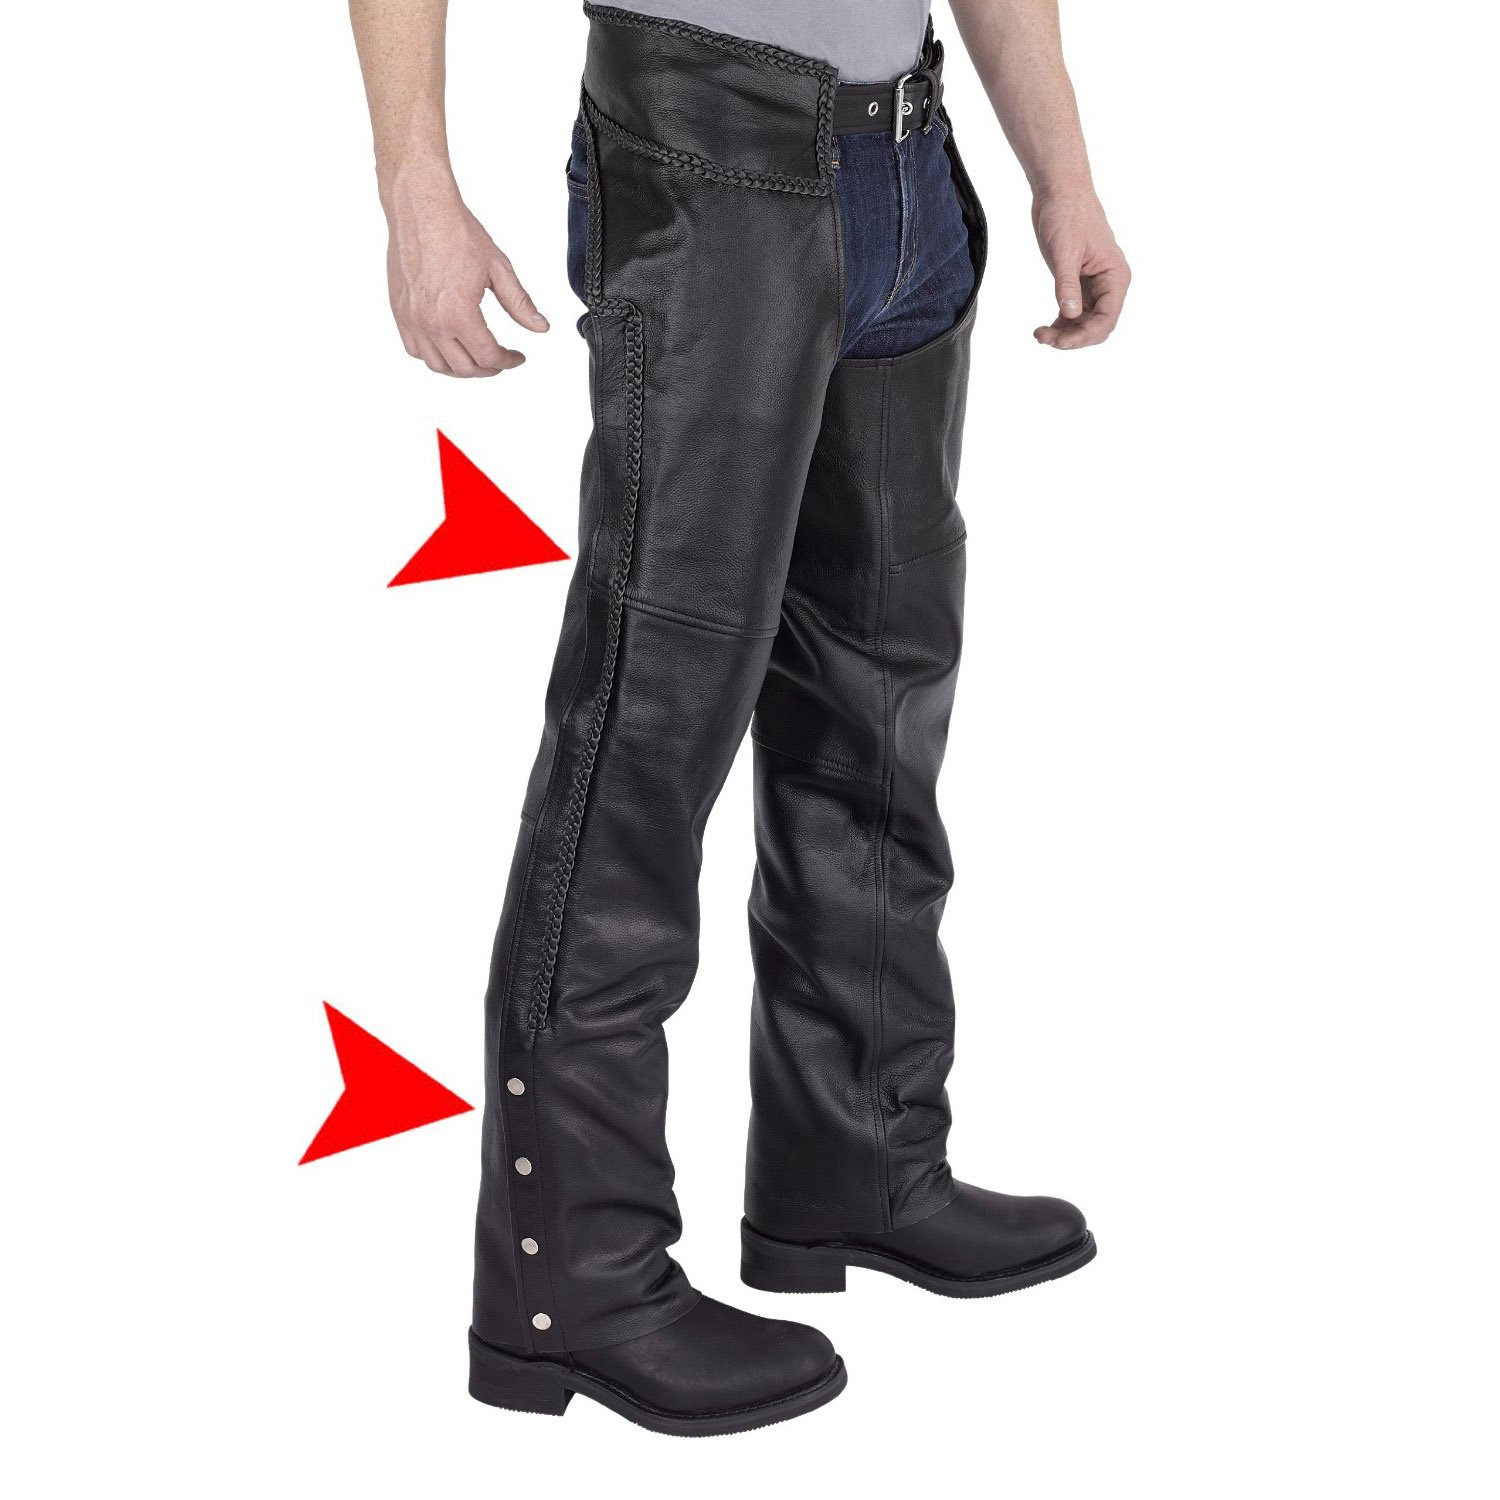 Best Rated in Motorcycle Protective Pants   Chaps   Helpful Customer ... 251c5e06a